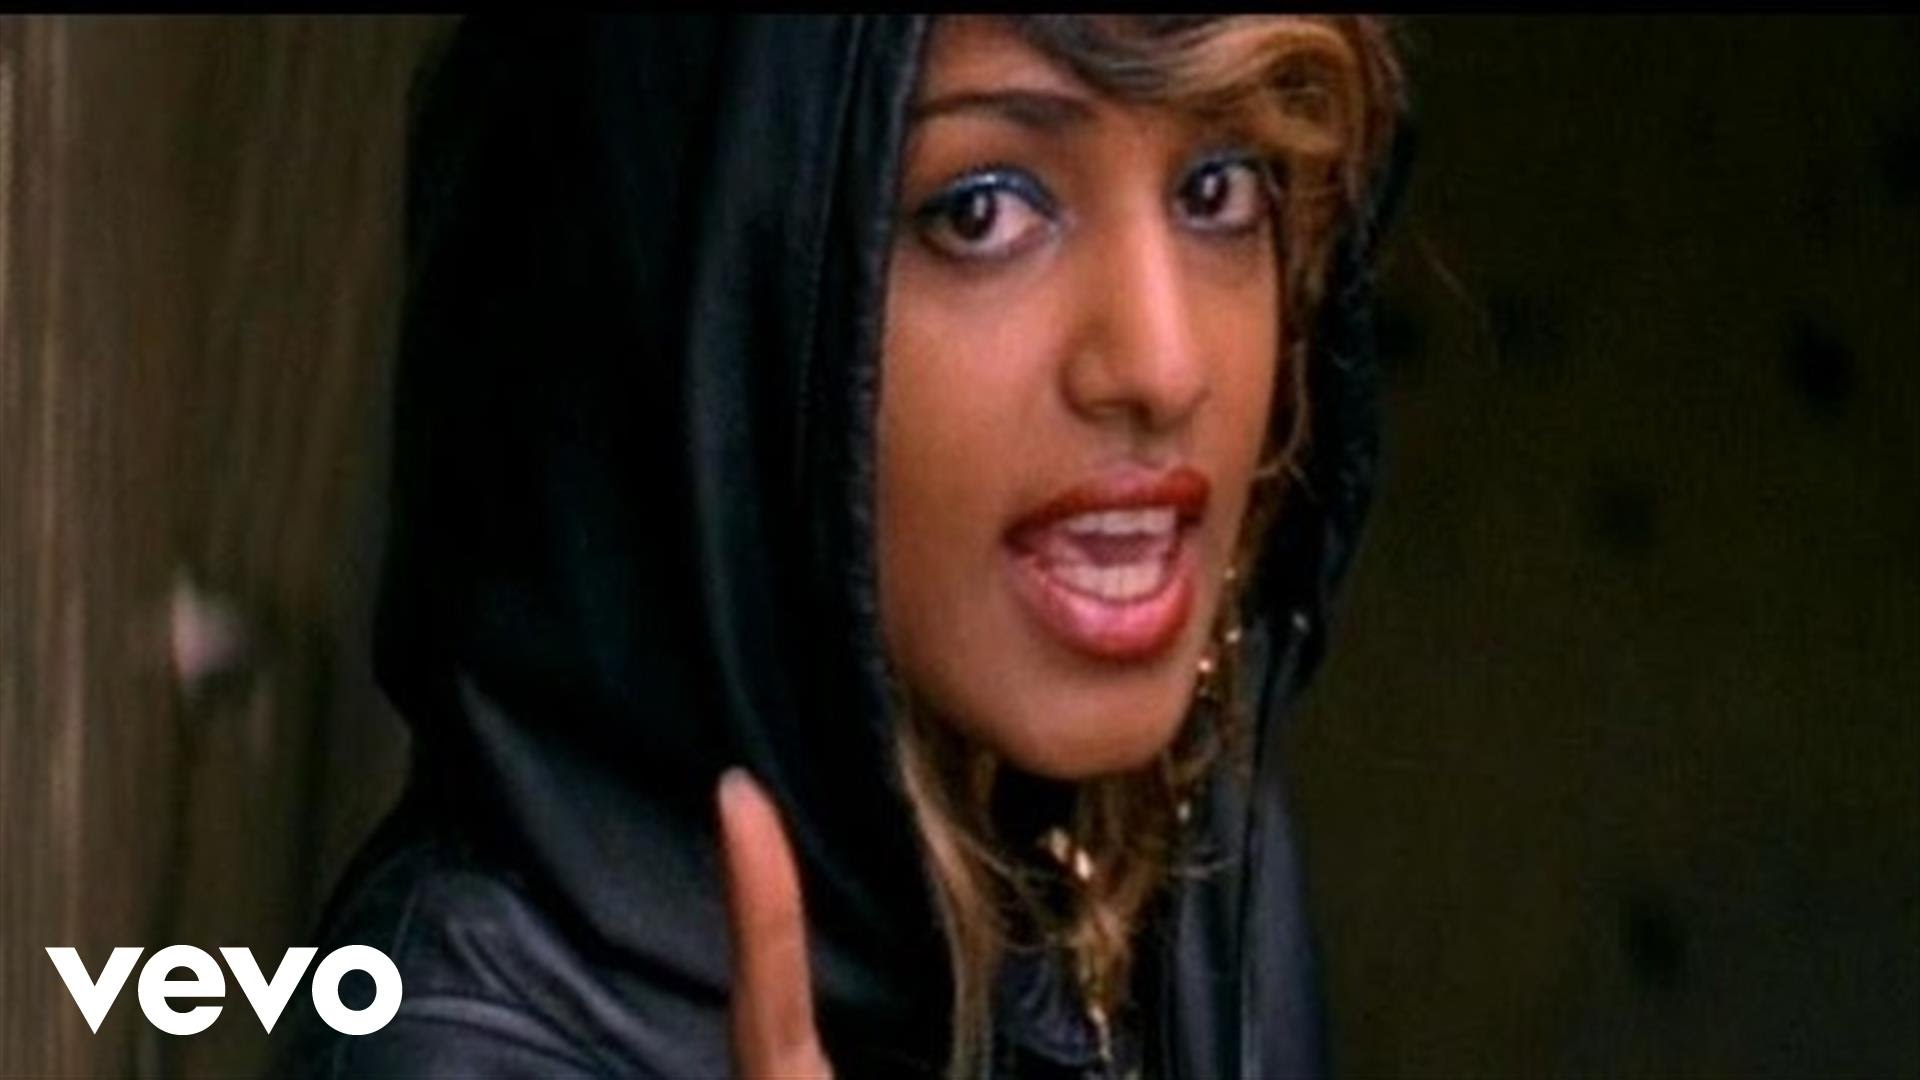 M.I.A. to premiere her documentary at Sundance